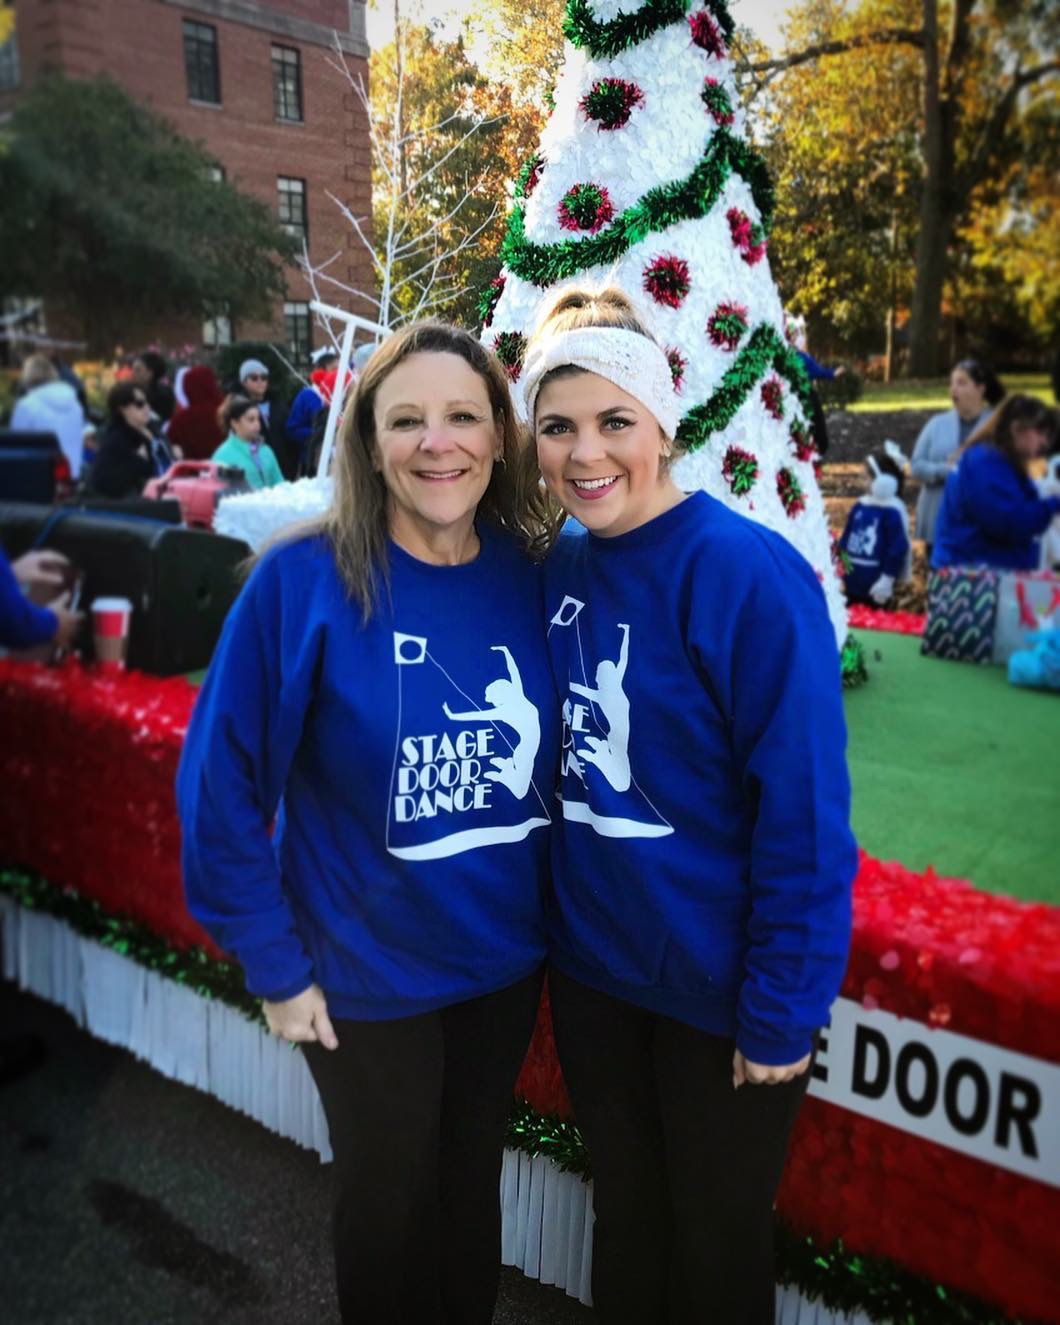 Miss Christina - Miss Christina (pictured here with her mom at the 2018 Raleigh Christmas Parade) has been a part of Stage Door Dance since 2014. A graduate of NC State University, she is currently pursuing graduate studies in addition to teaching at SDD.In her free time, Christina enjoys cheering on the Wolfpack, spending time with her pup Lilly, and traveling.